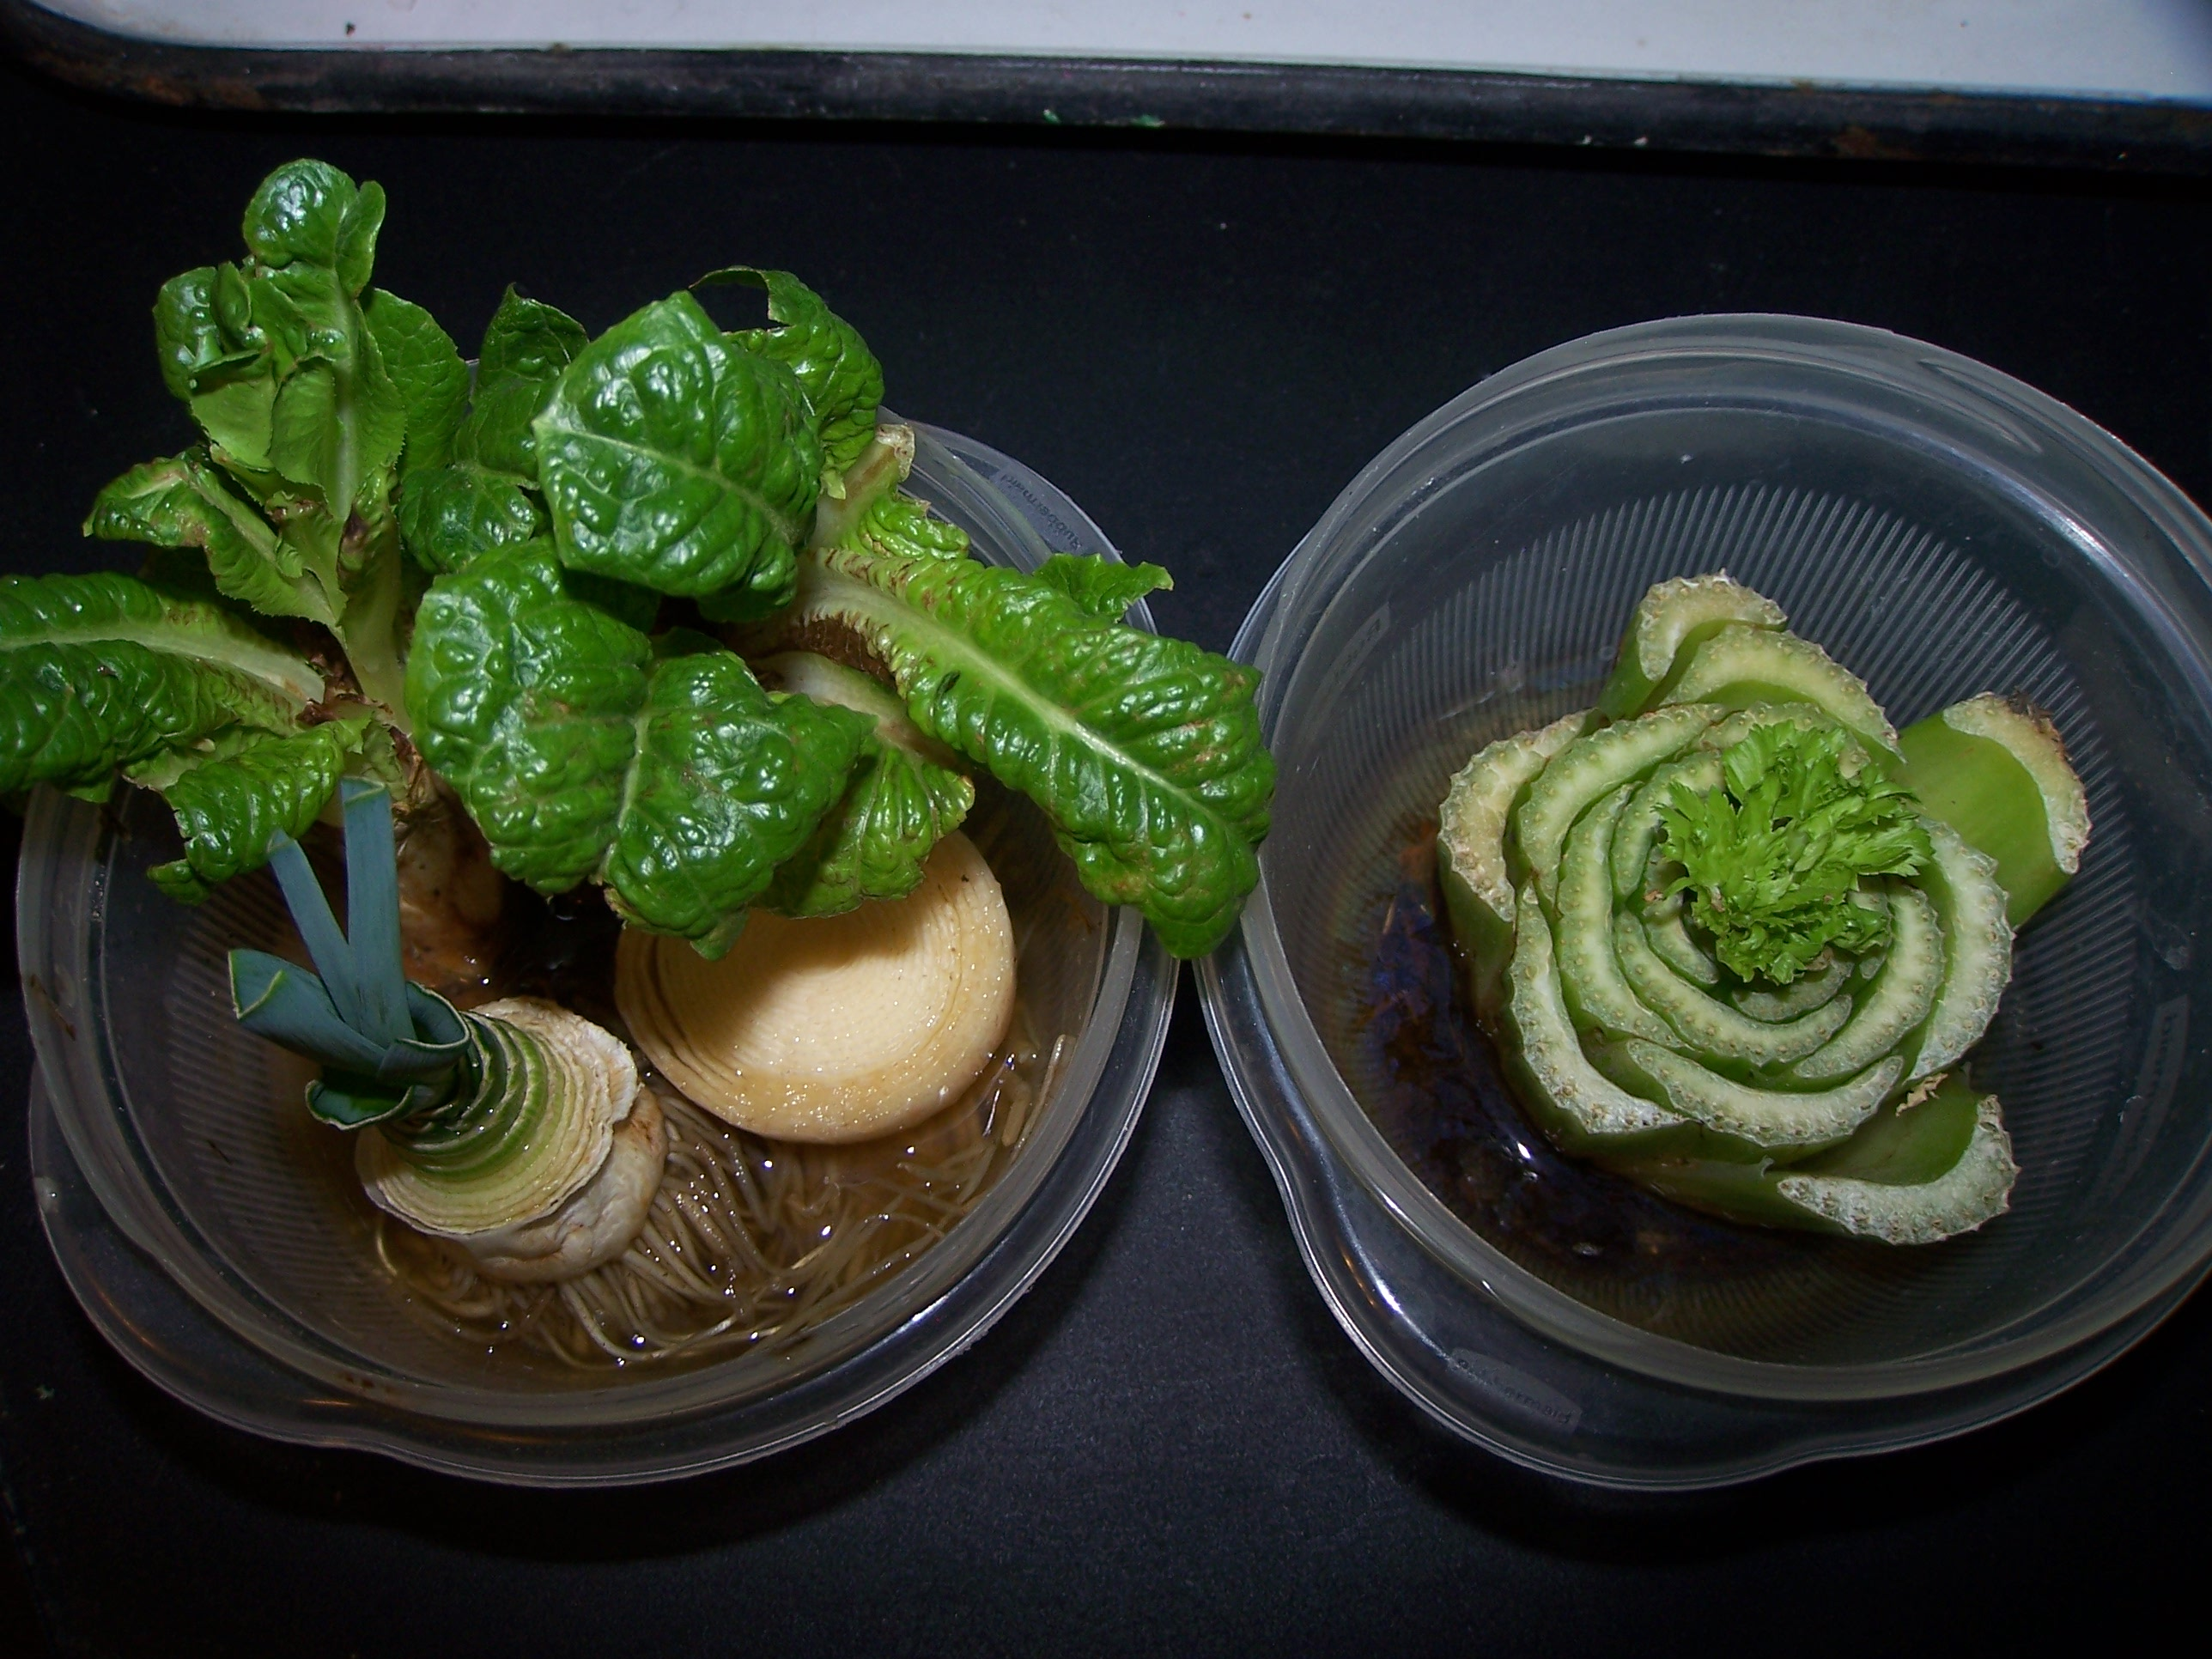 Vegetables from Scraps? Yep, You Can Grow That ... Growing Vegetables From Scraps